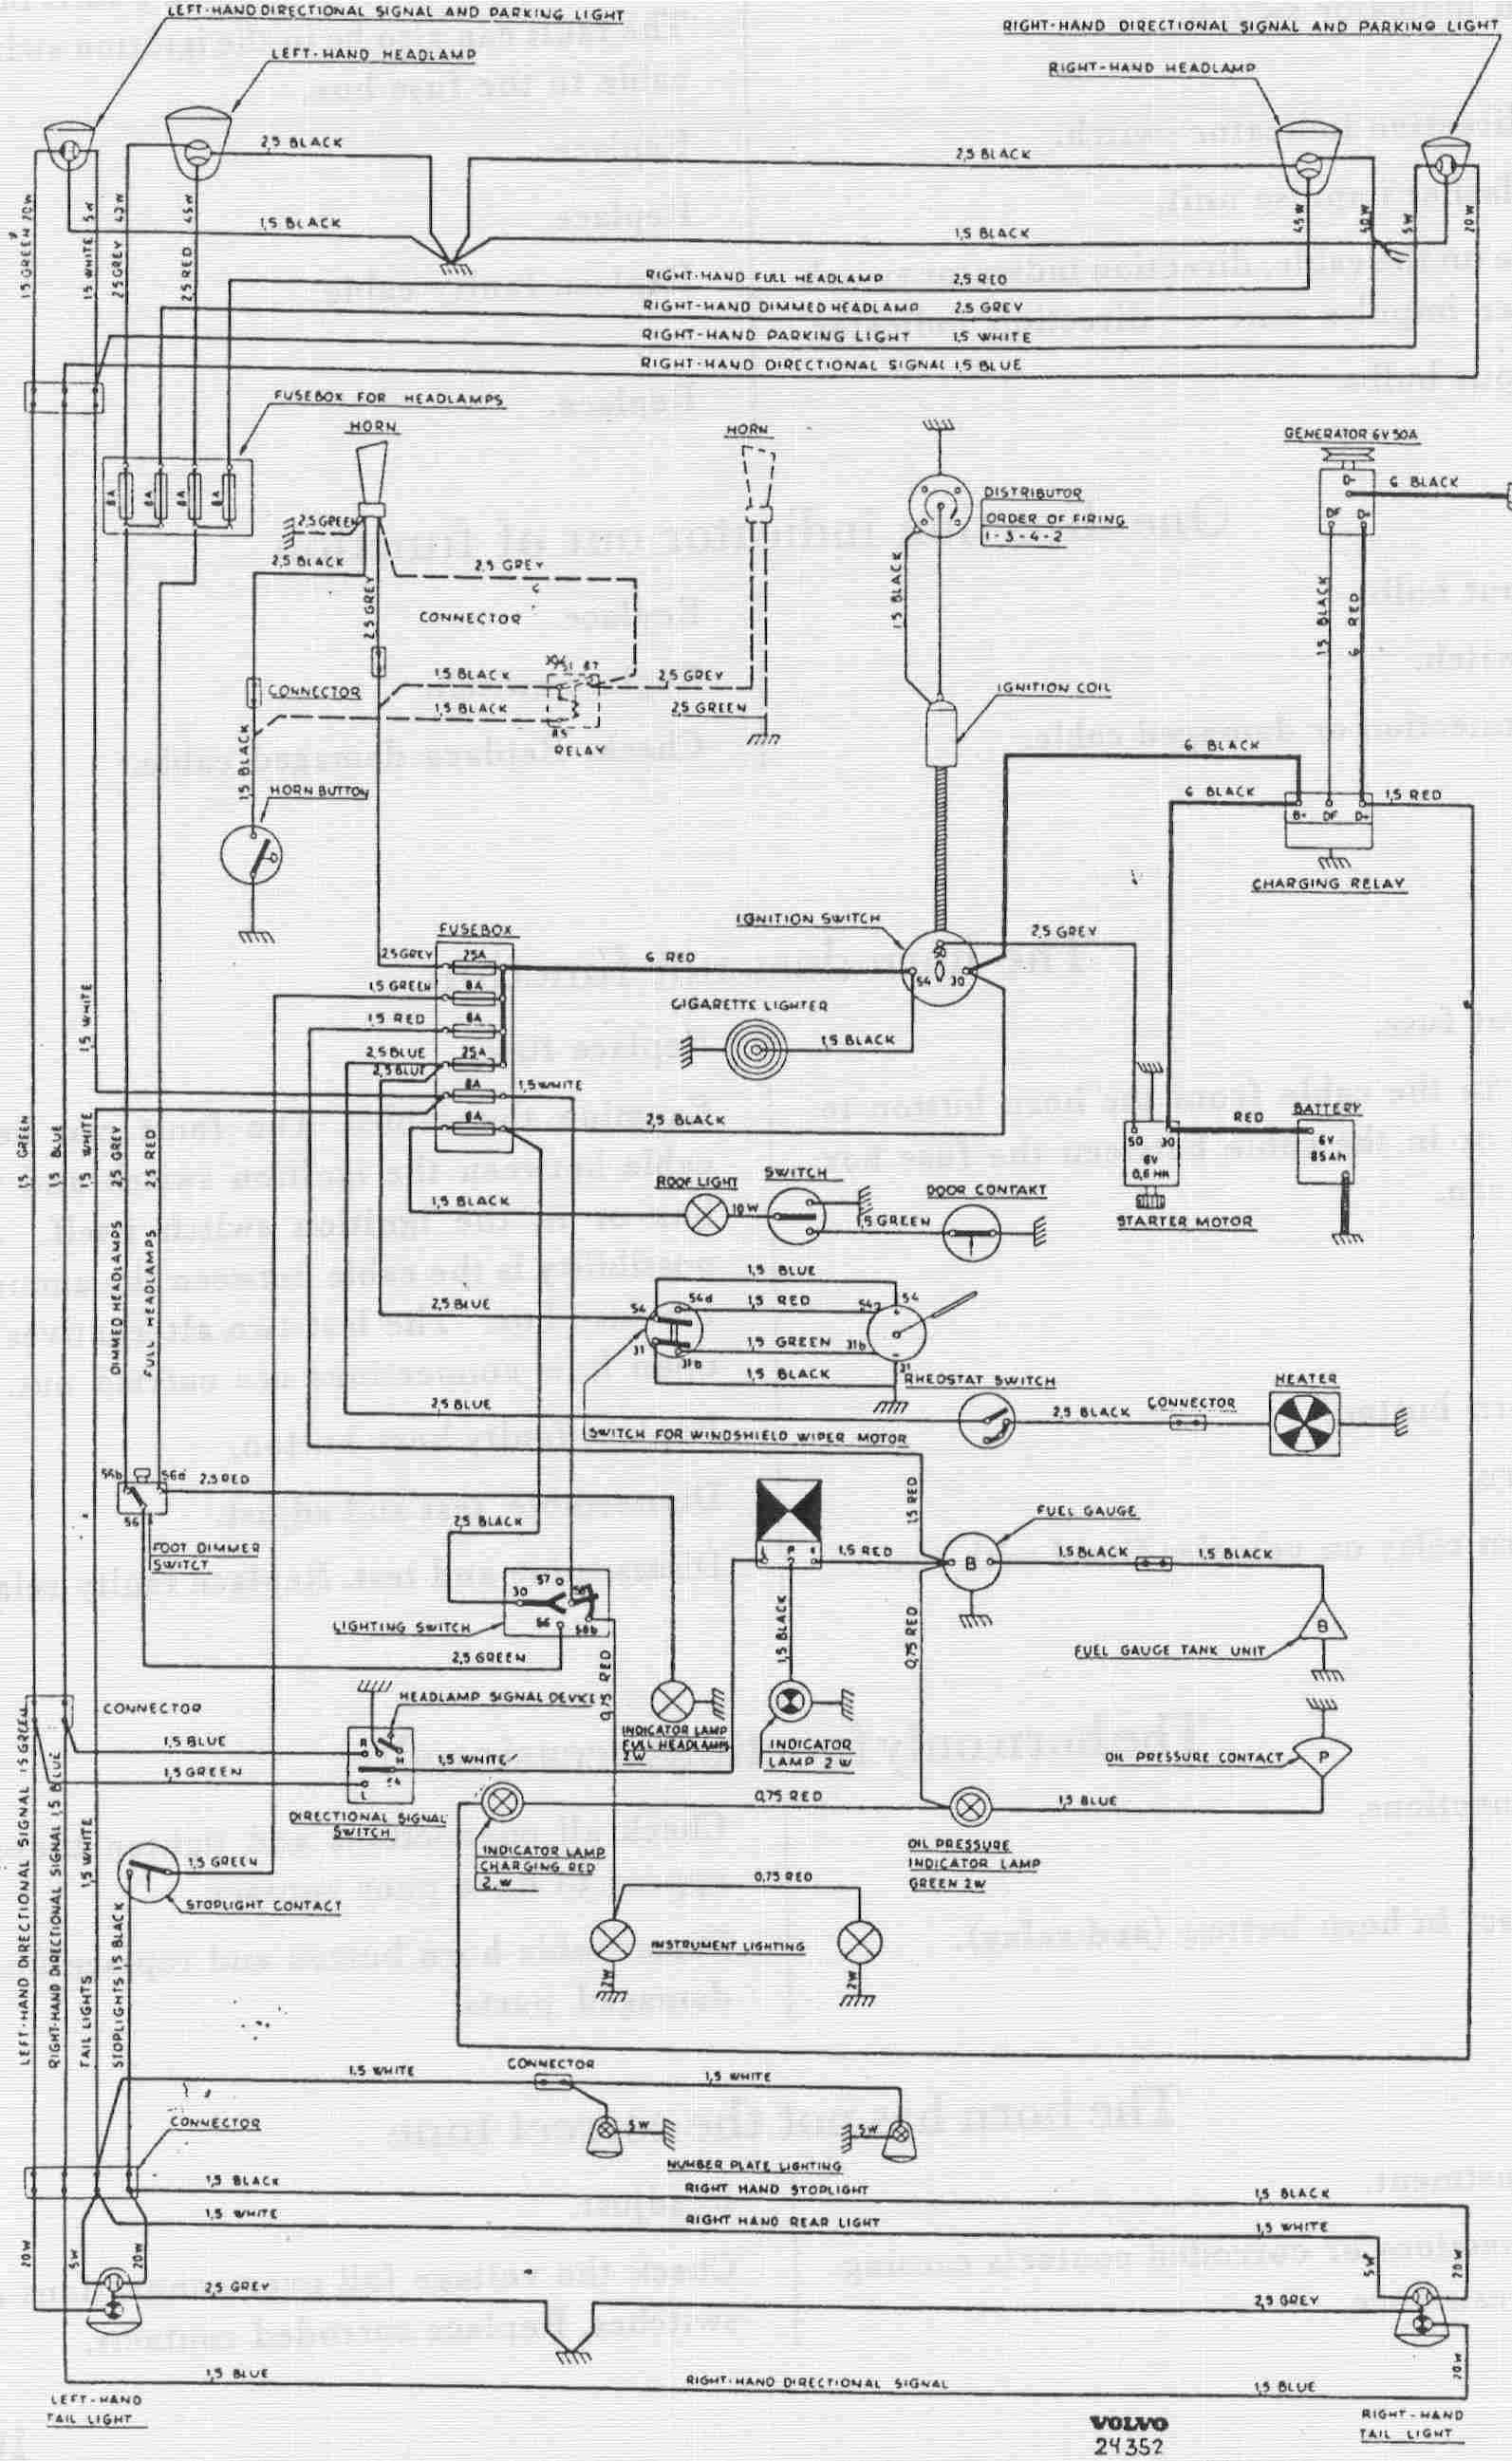 Remarkable Peterbilt 340 Wiring Diagram Images - Best Image Wire ...